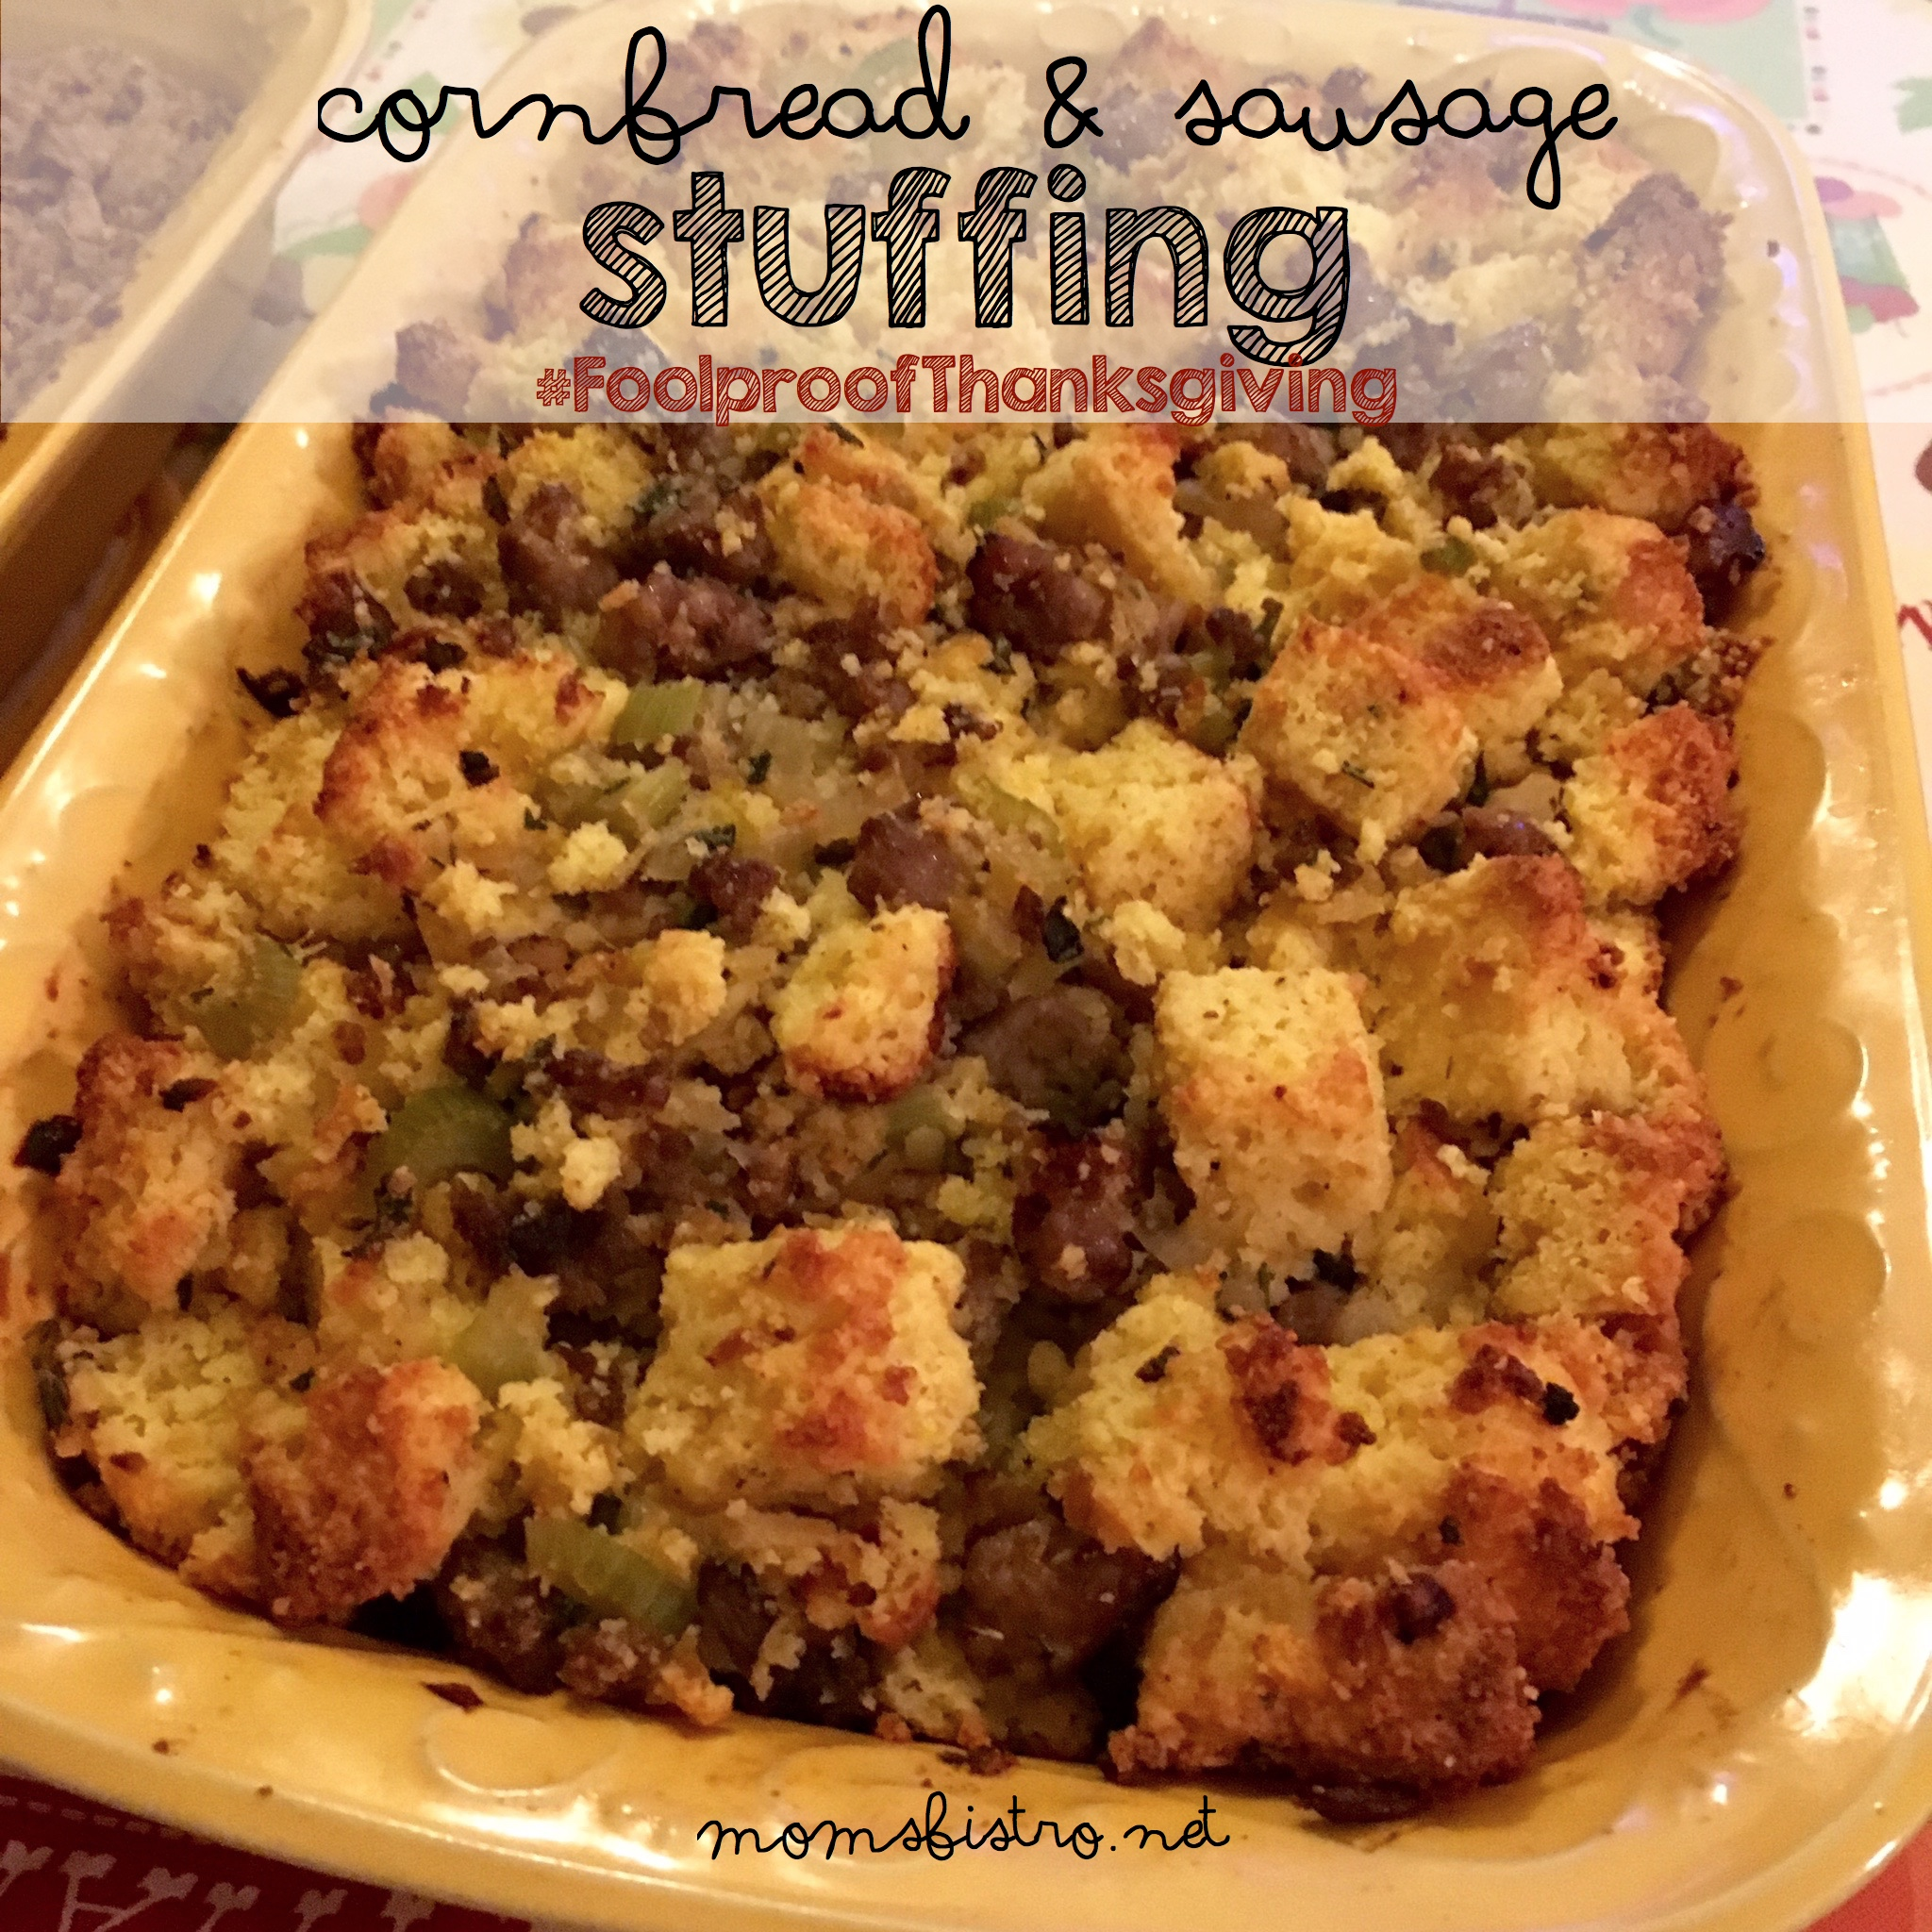 Get Ready For Thanksgiving With This Easy Make Ahead Cornbread and Sausage Stuffing Recipe | #FoolproofThanksgiving